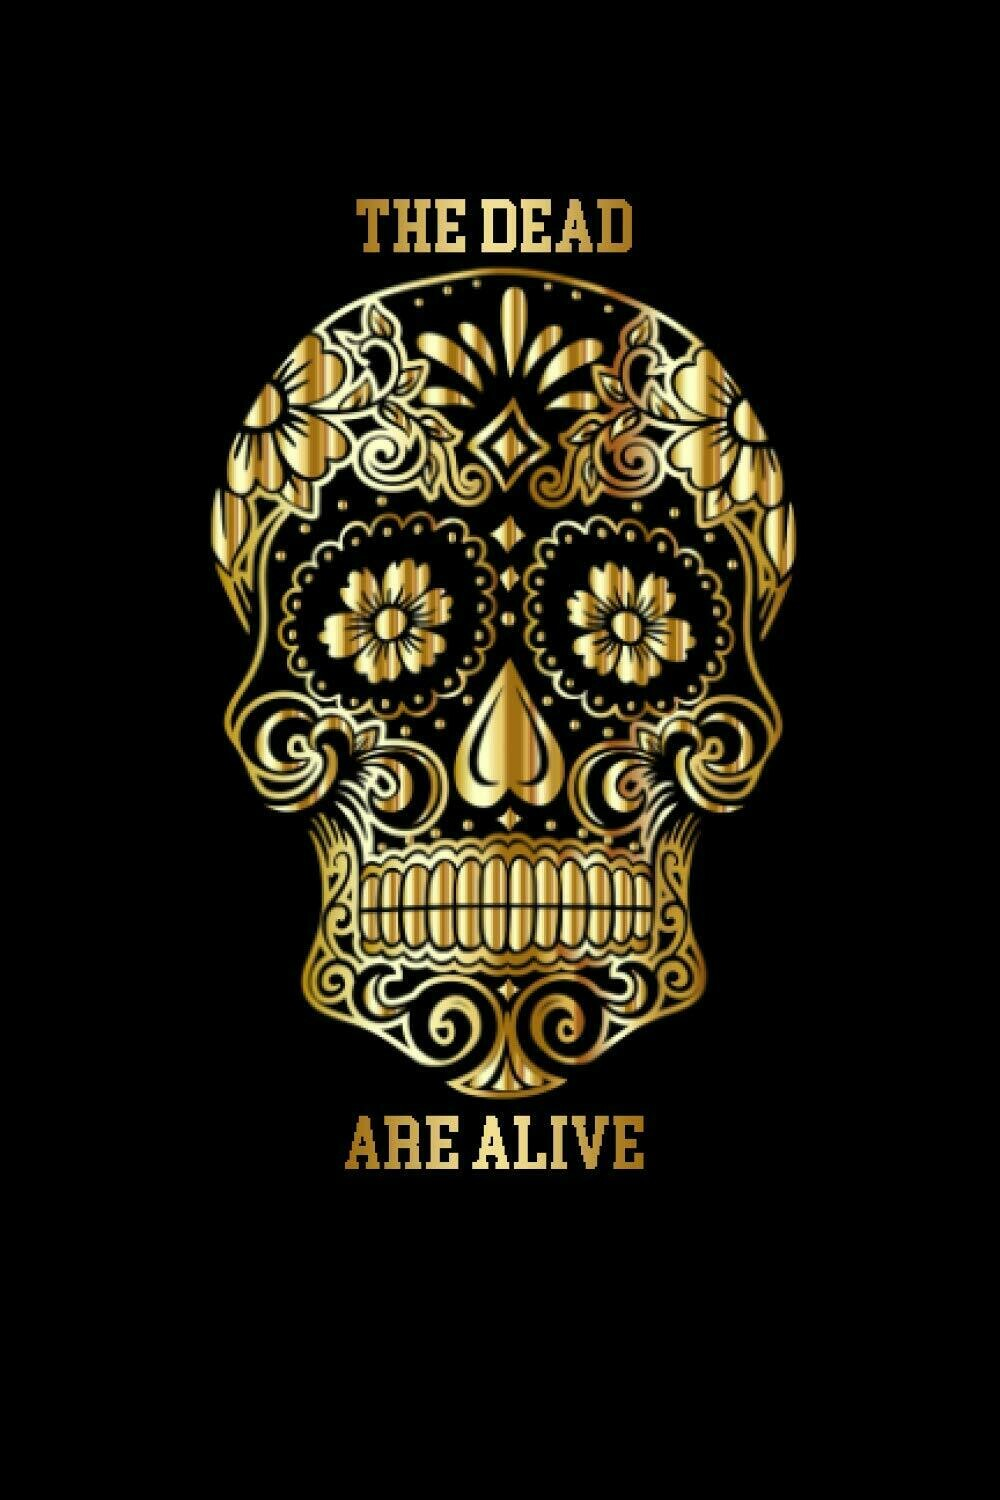 Day of the Dead [THE DEAD ARE ALIVE] Luxury Lined Journal - Dream Diary Writing Notebook